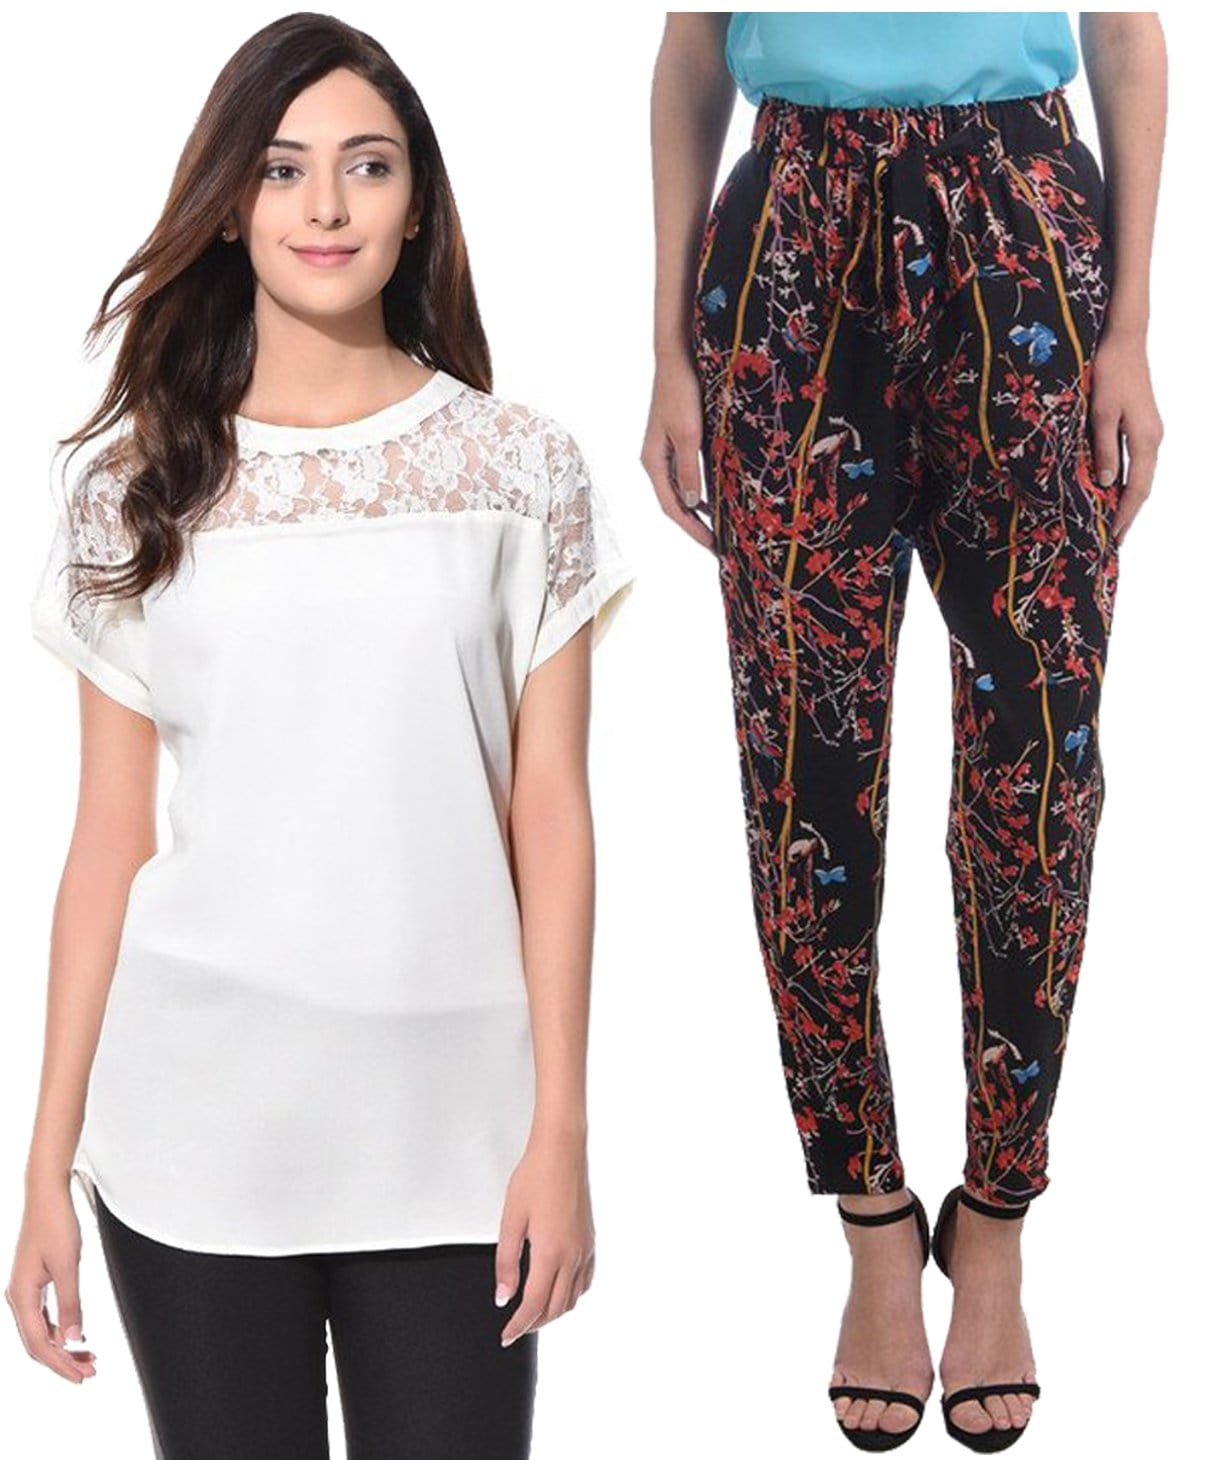 Lace Top & Trouser Super Saver Combo - Uptownie